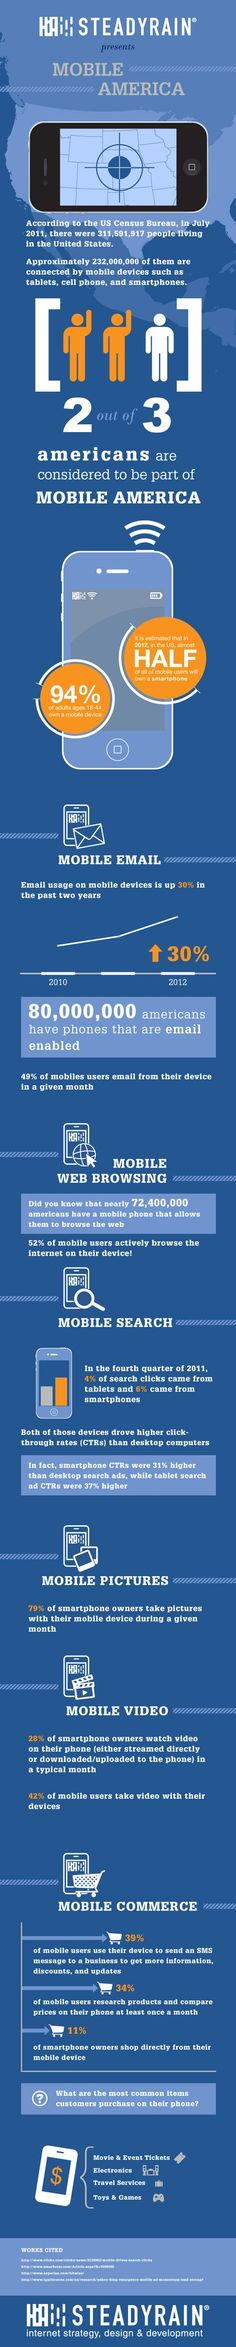 Mobile phone use in the U.S.